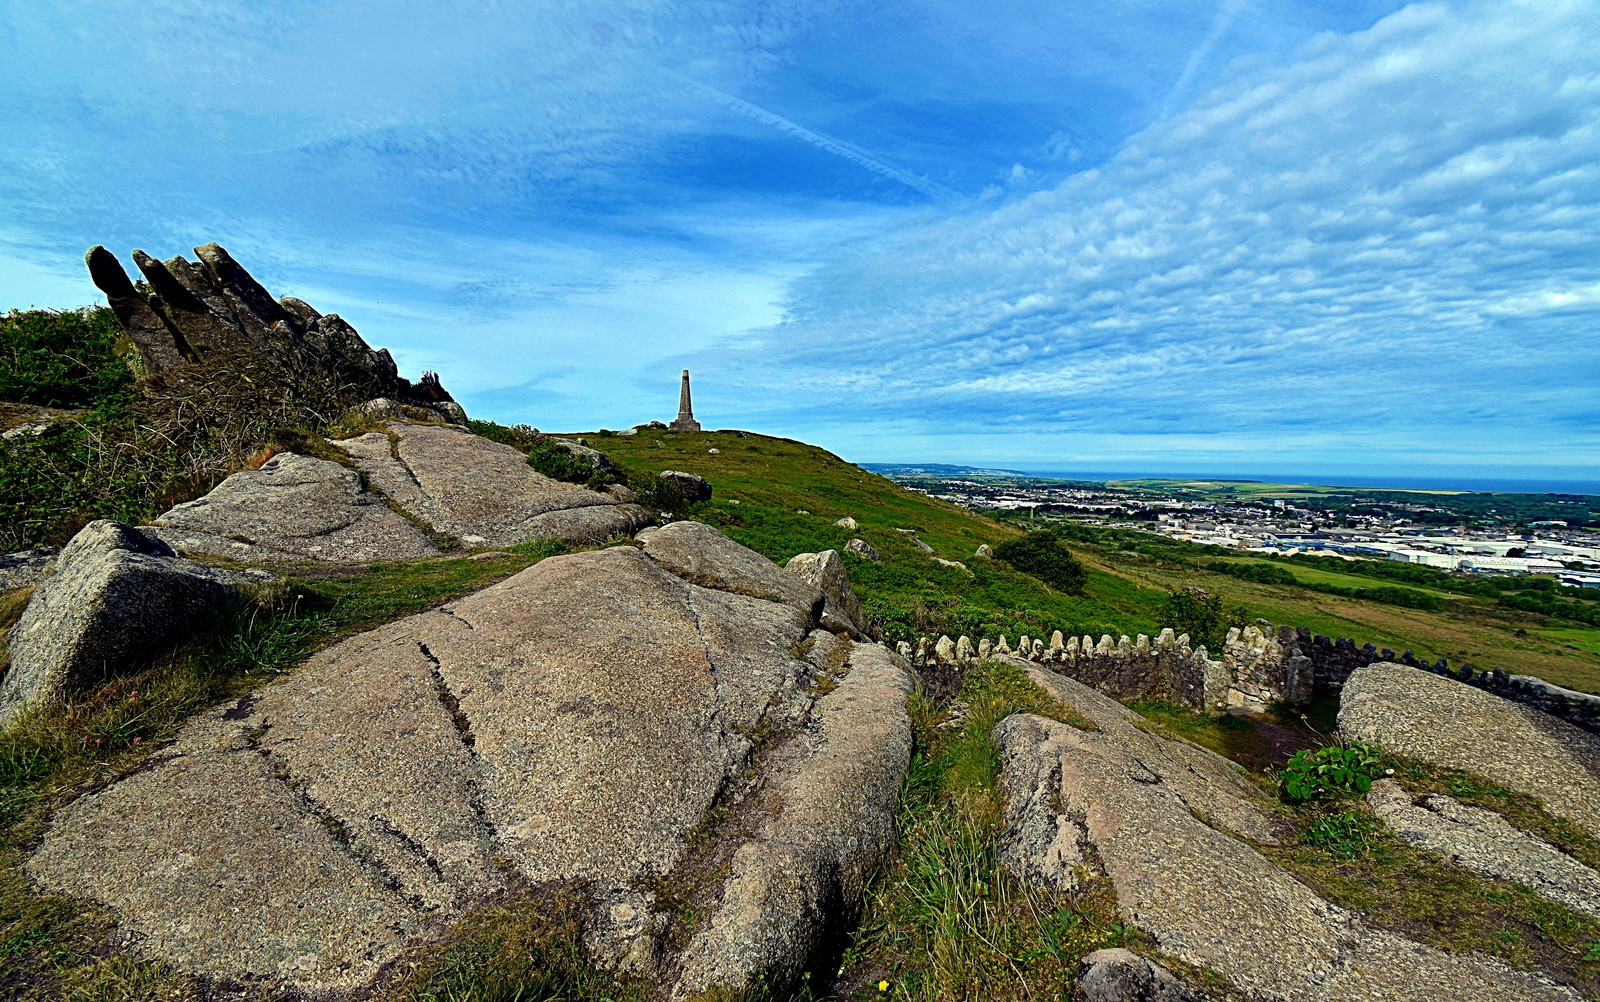 A view from Carn Brea